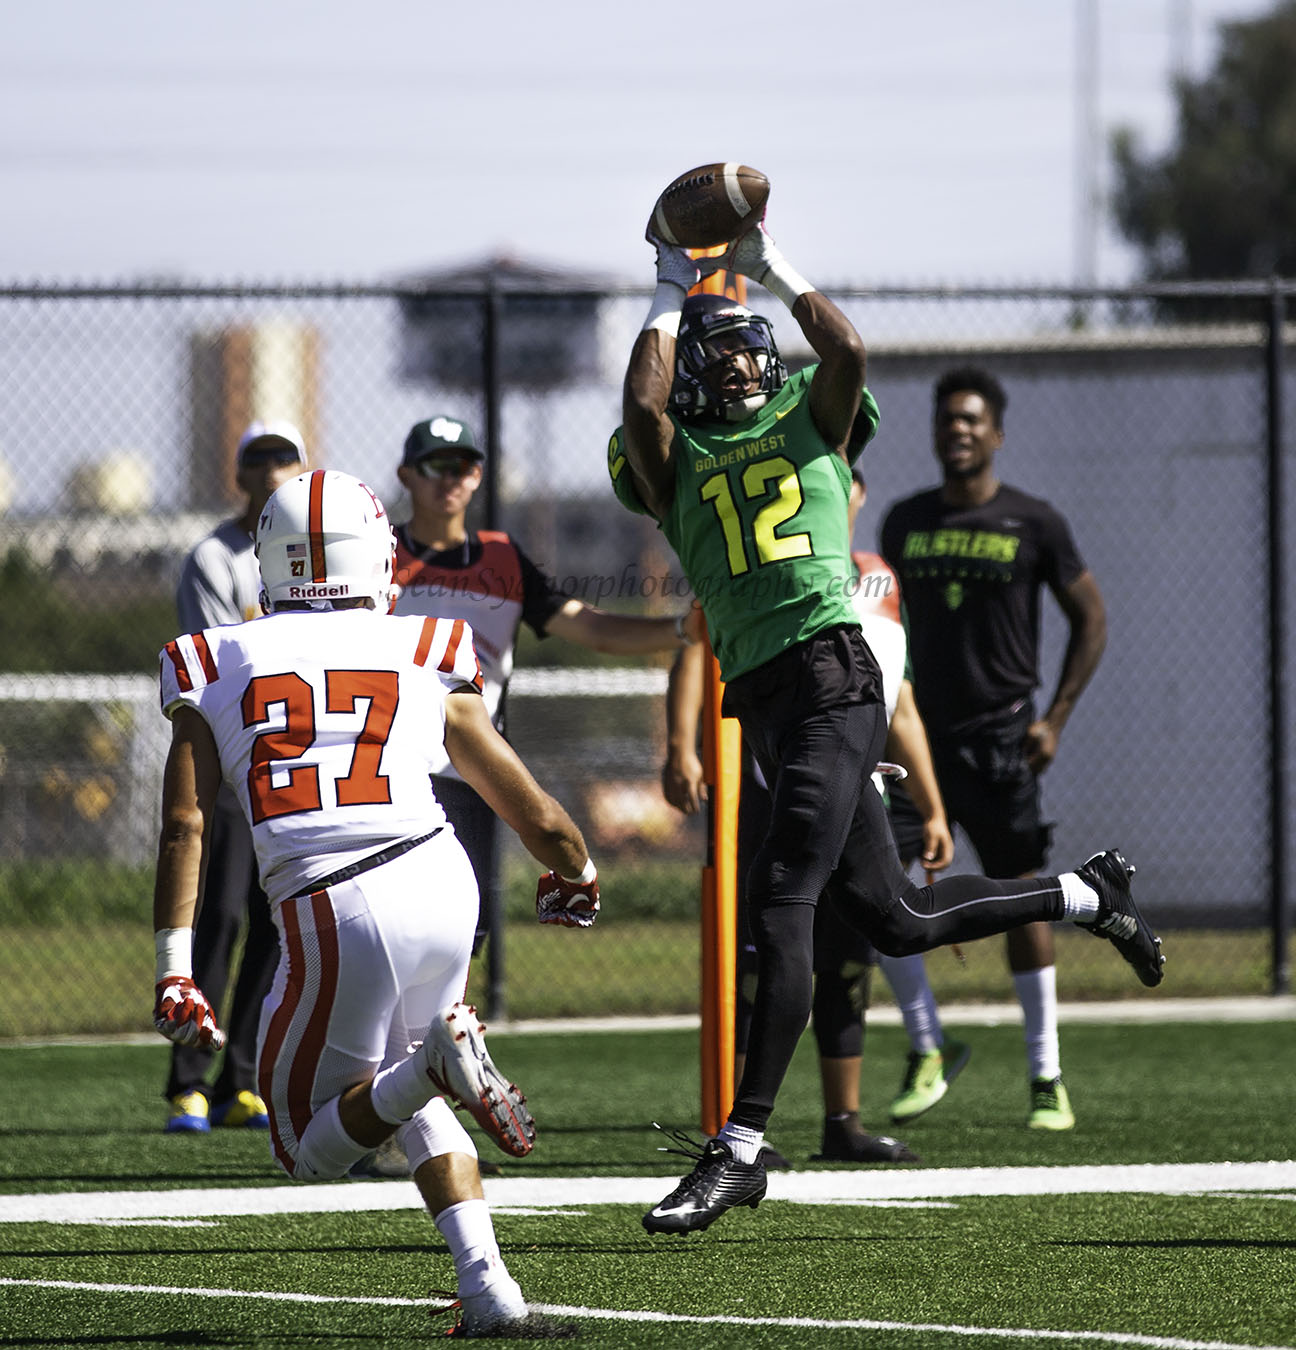 Football: Tough Red Zone Defense Carries Rustlers in 13-11 Victory Over Bakersfield